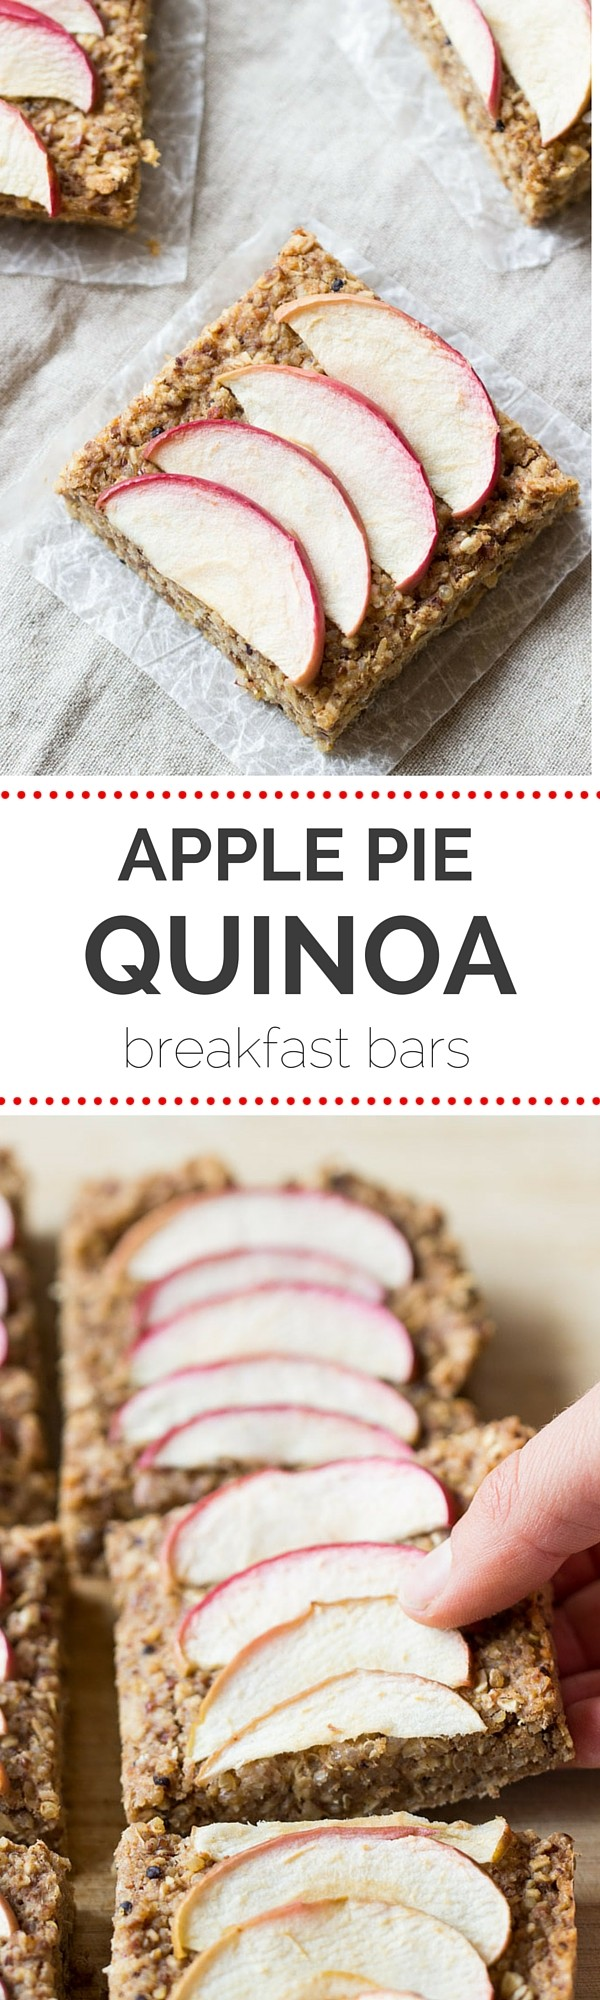 Get the recipe Apple Pie Quinoa Breakfast Bars @recipes_to_go